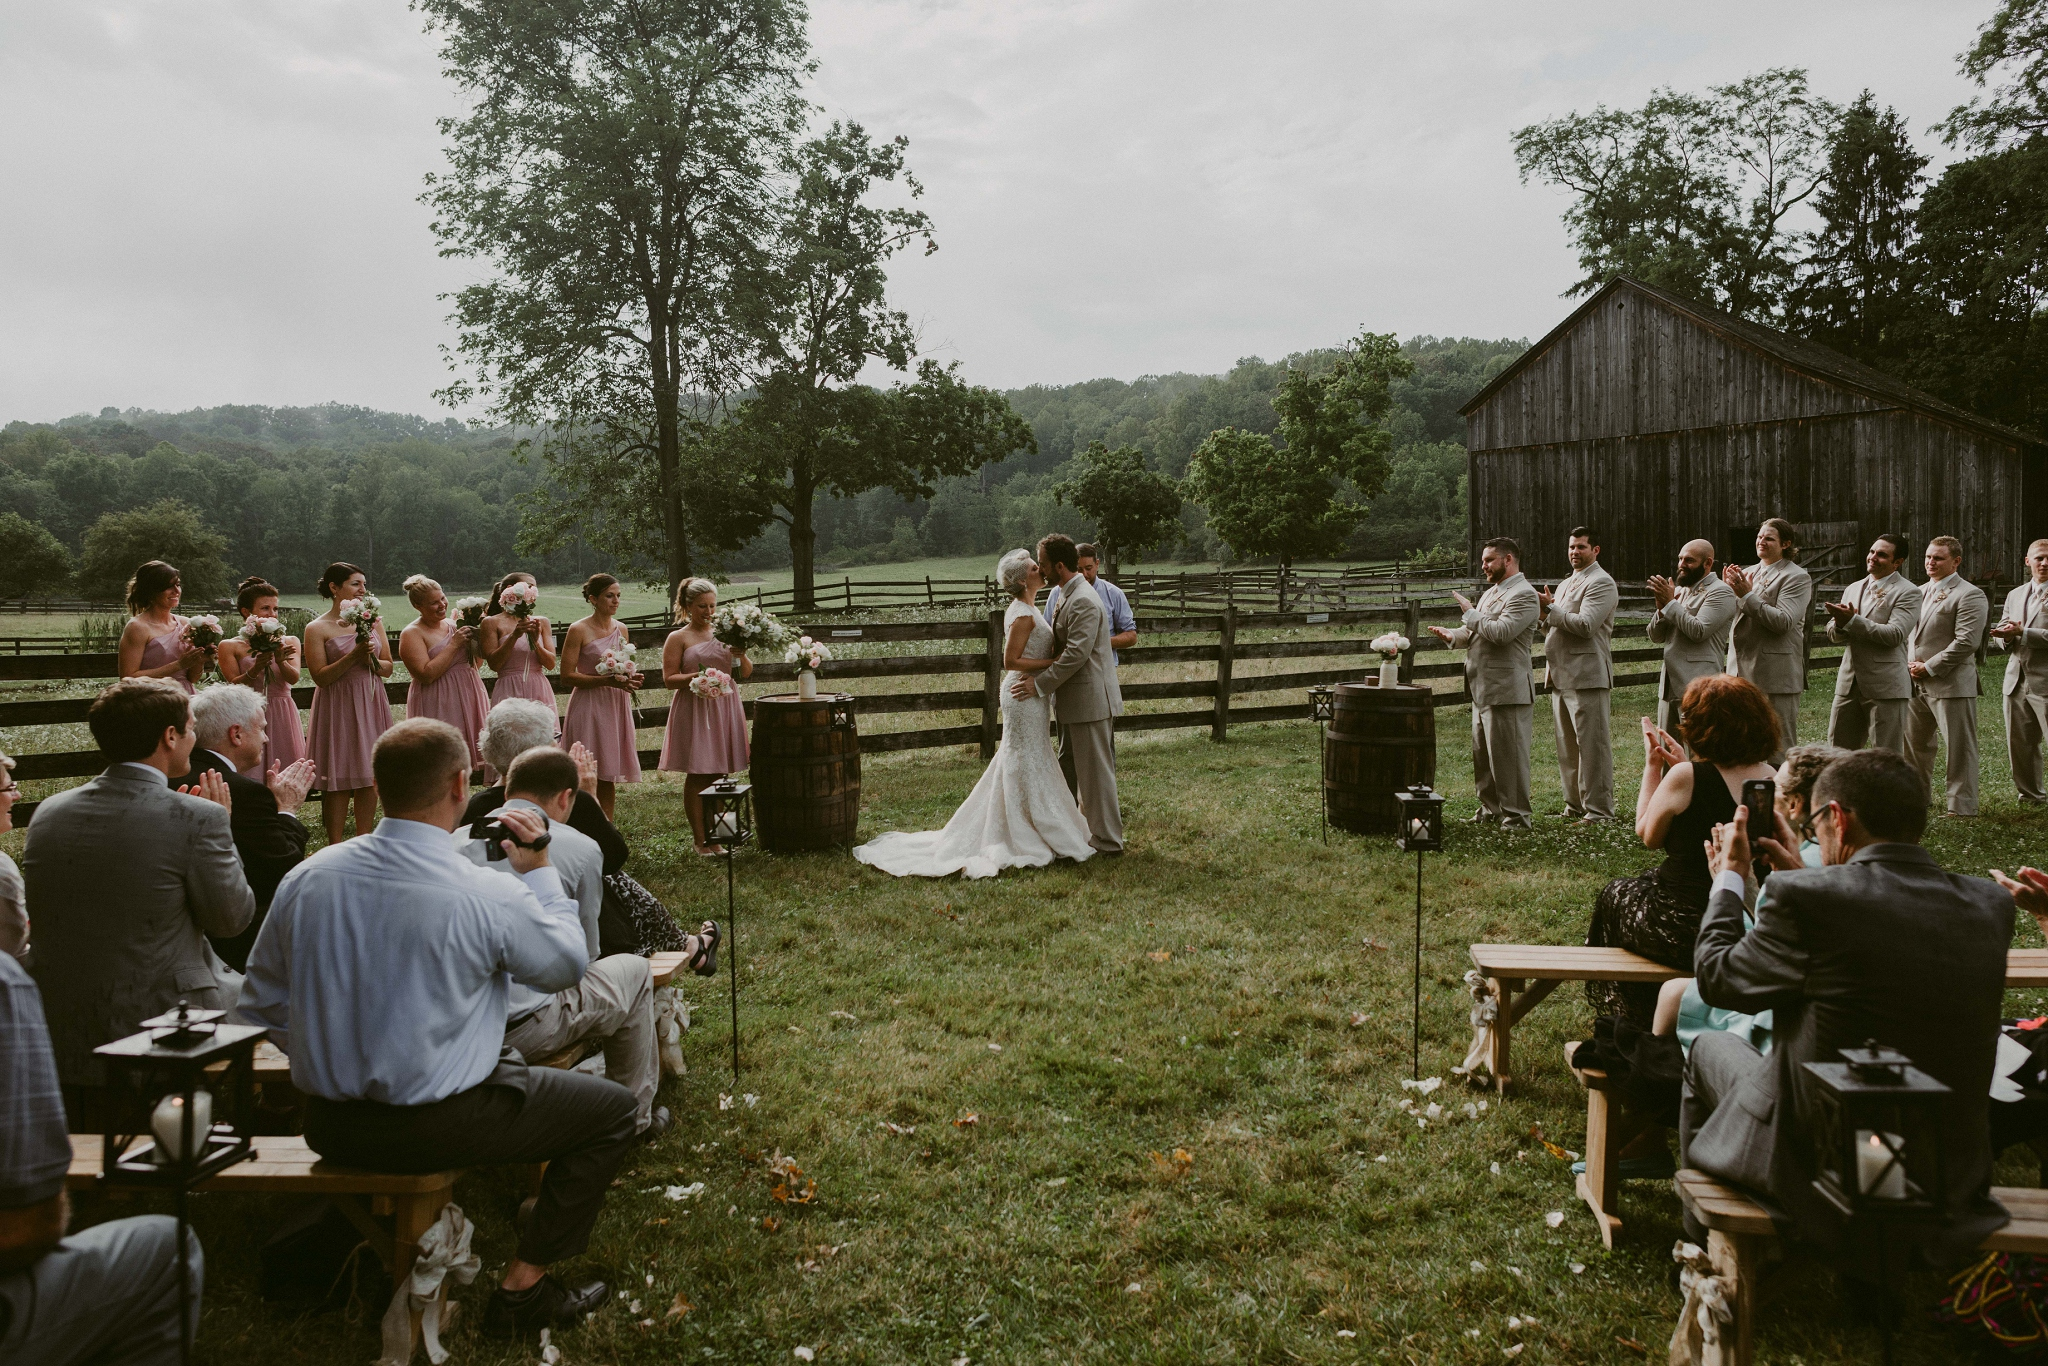 Hines-Hill-Farm-Cuyahoga-Valley-National-Park-Wedding_Emi+Andy_MJPHOTO-513.jpg